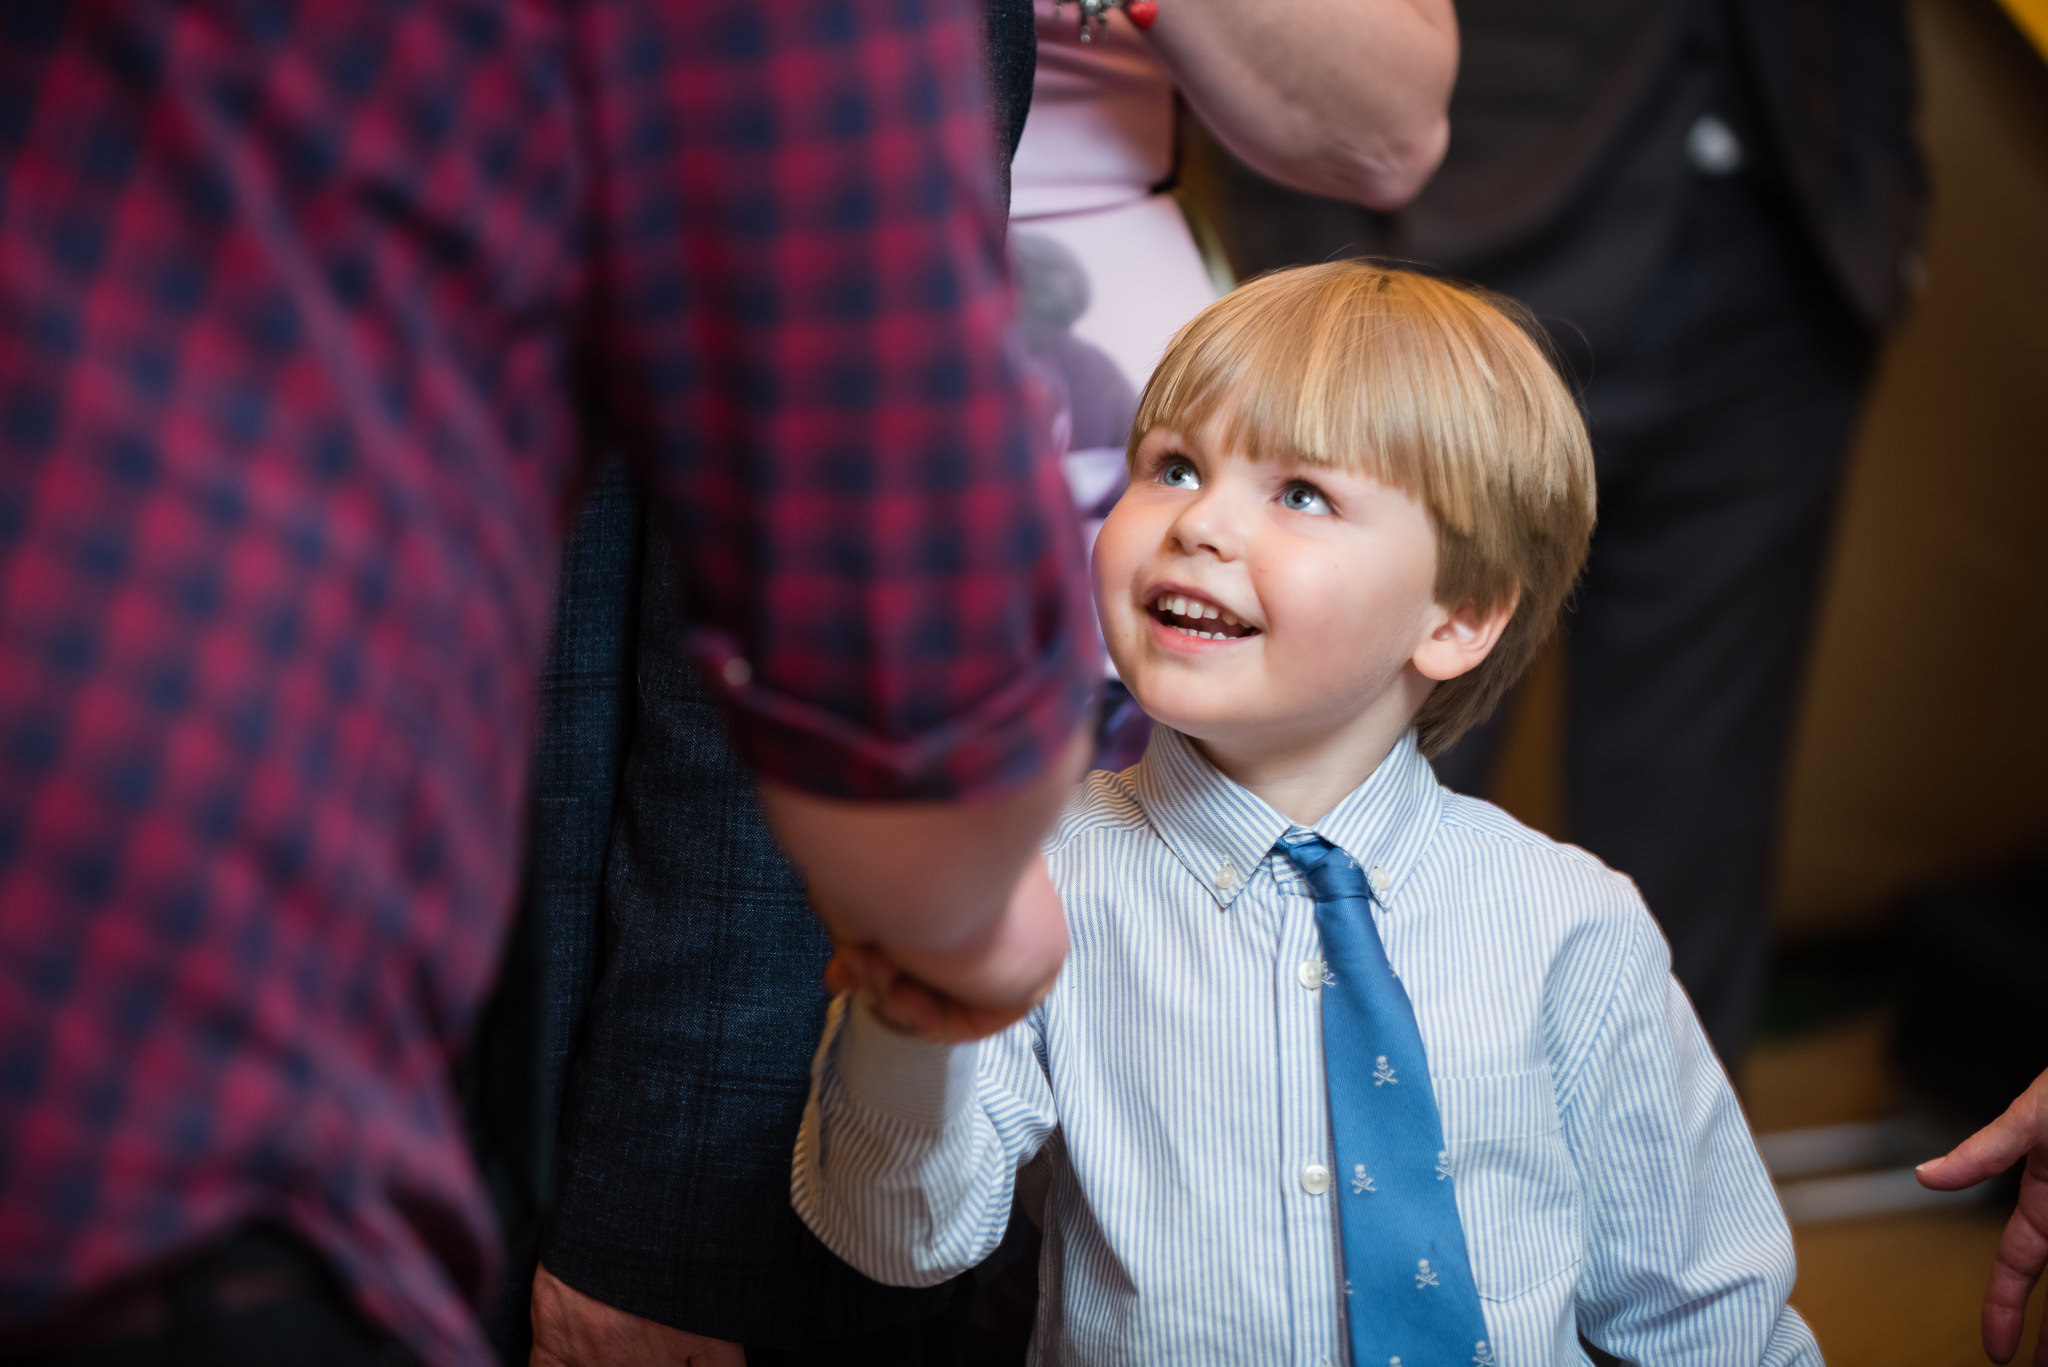 A boy at the wedding